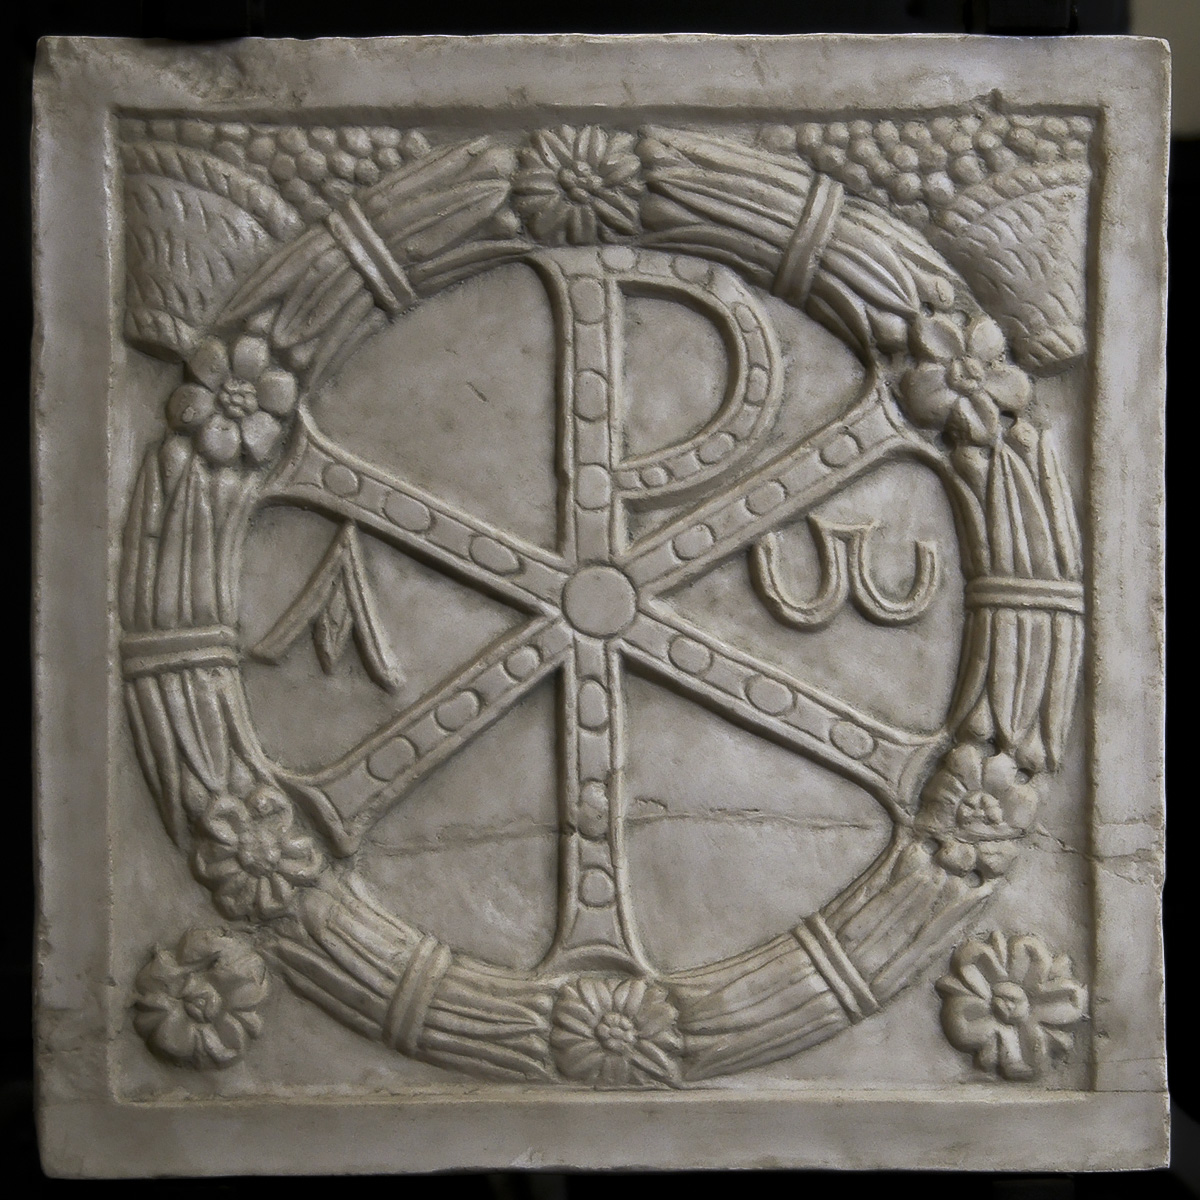 The Christ monogram. Central fragment of the frontal side of a strigillated sarcophagus. End of the 4th cent. CE. Inv. No. 31550 (ex 188). Rome, Vatican Museums, Pio-Christian Museum